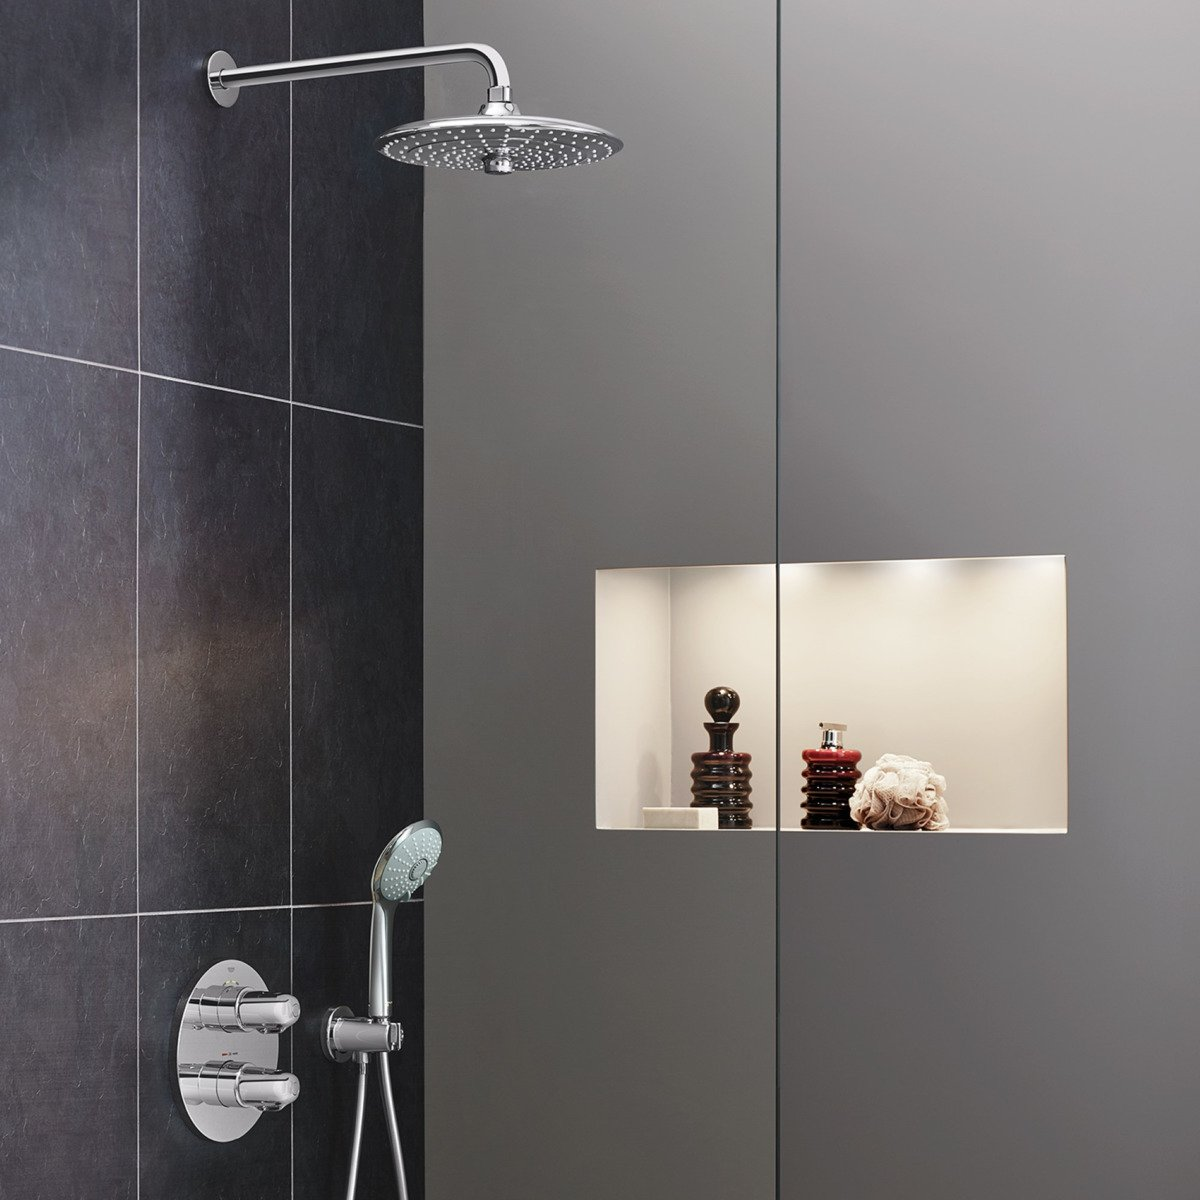 grohe grohe douche de t te 26cm smartcontrol 3 jets avec bras de douche mural 38cm chrome. Black Bedroom Furniture Sets. Home Design Ideas